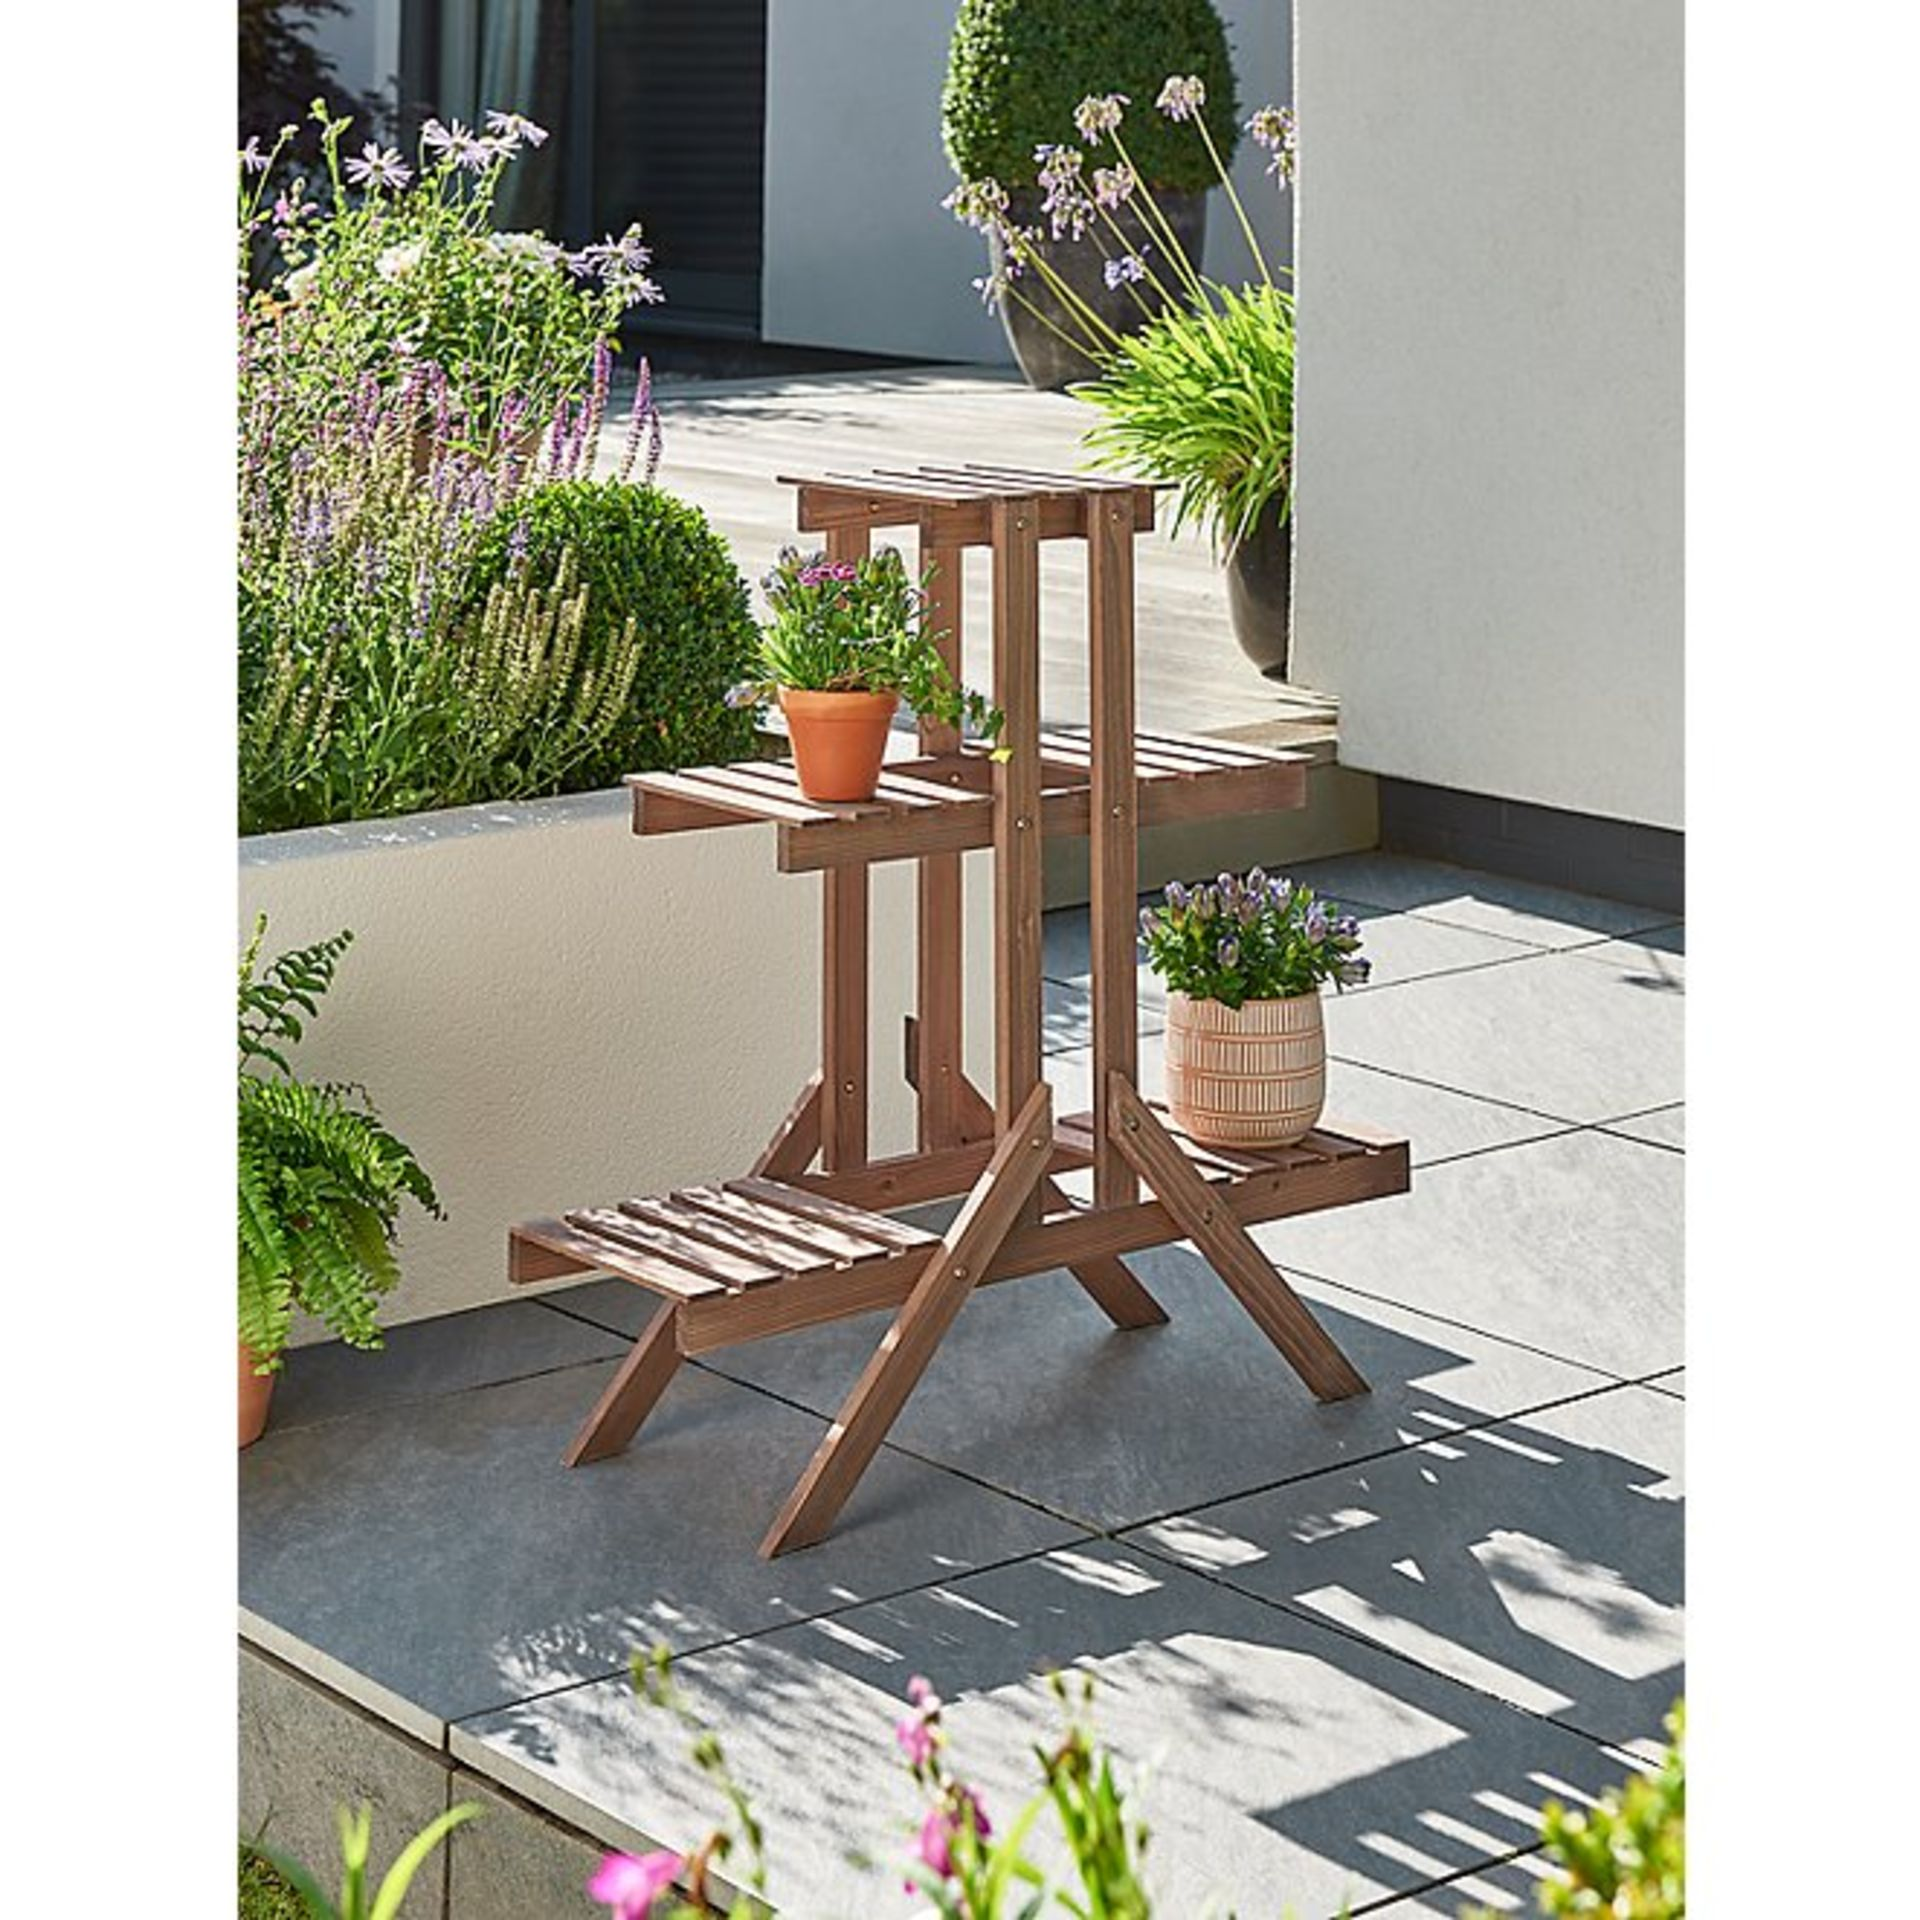 (3C) 2x Items. 1x GH Wooden Plant Stand. 1x GH Wooden Potting Bench.